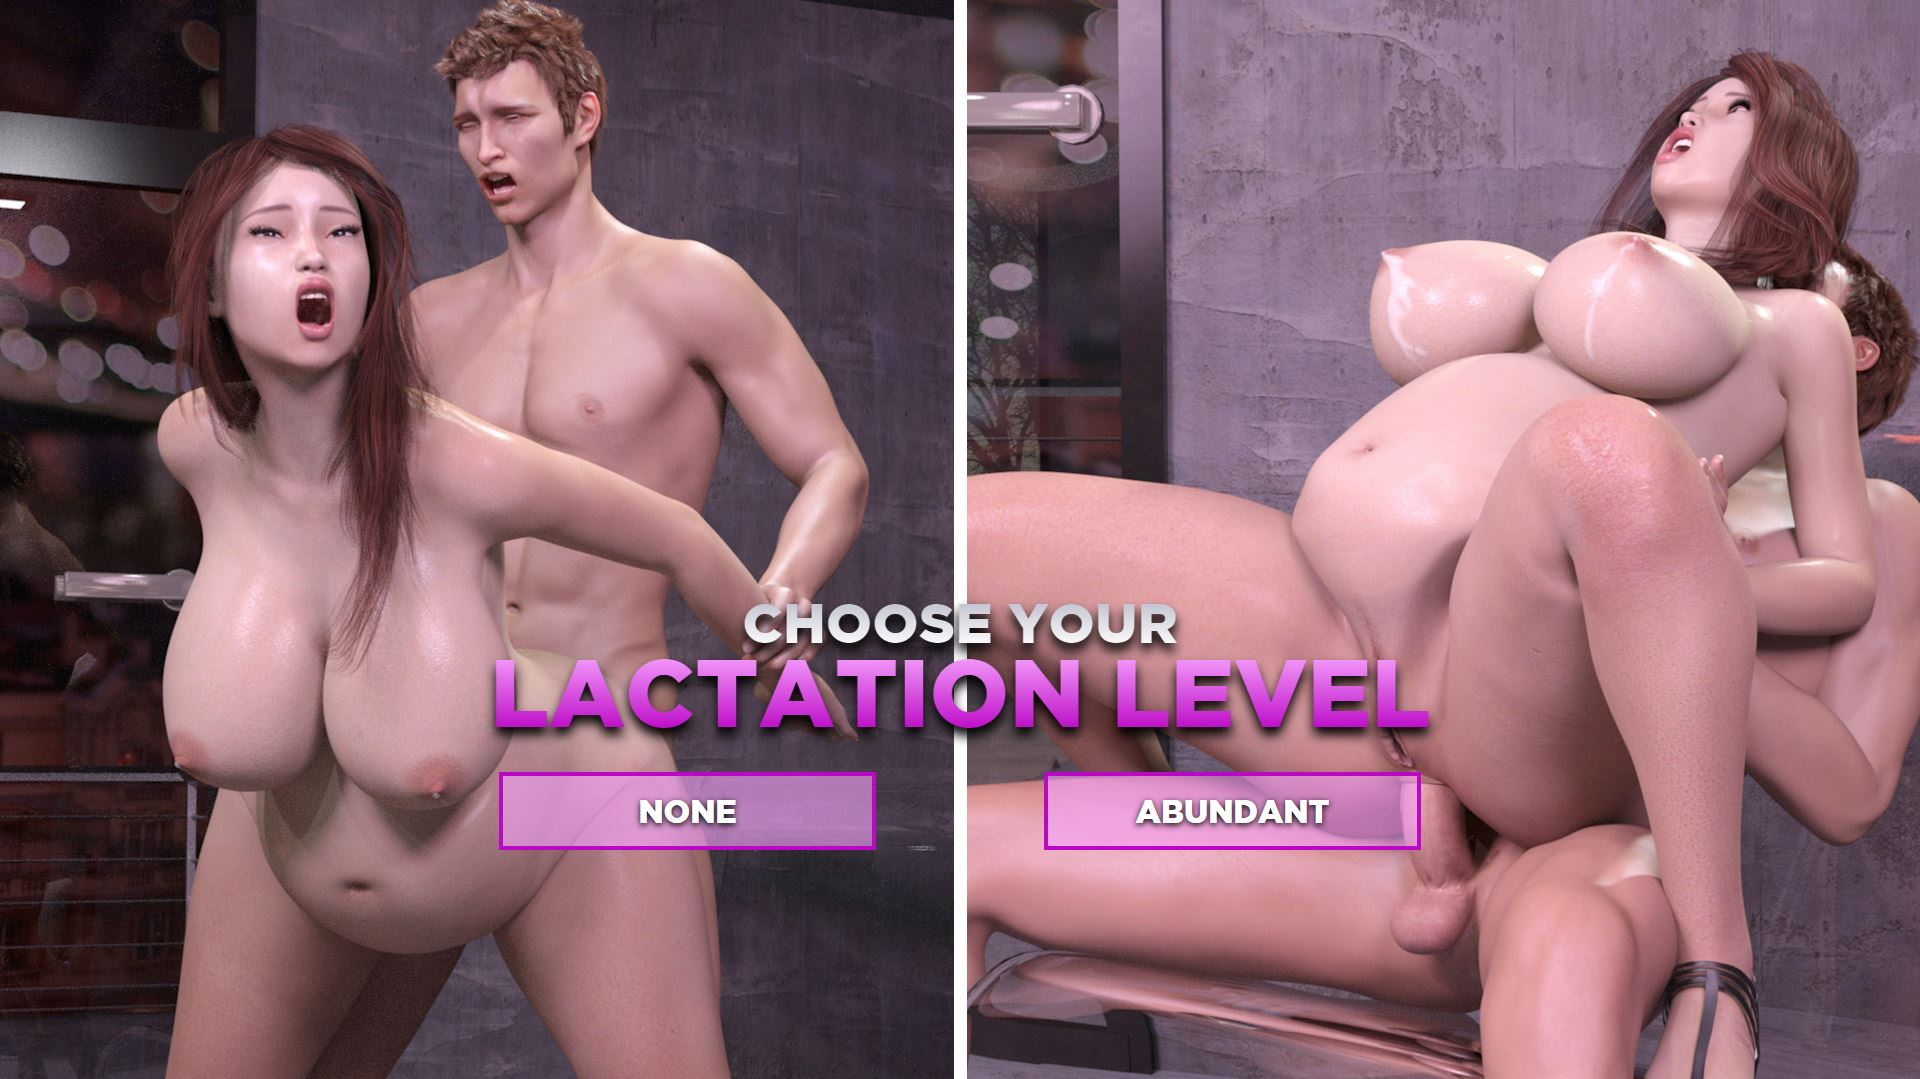 Pregnant Sex Games Landing Page 4